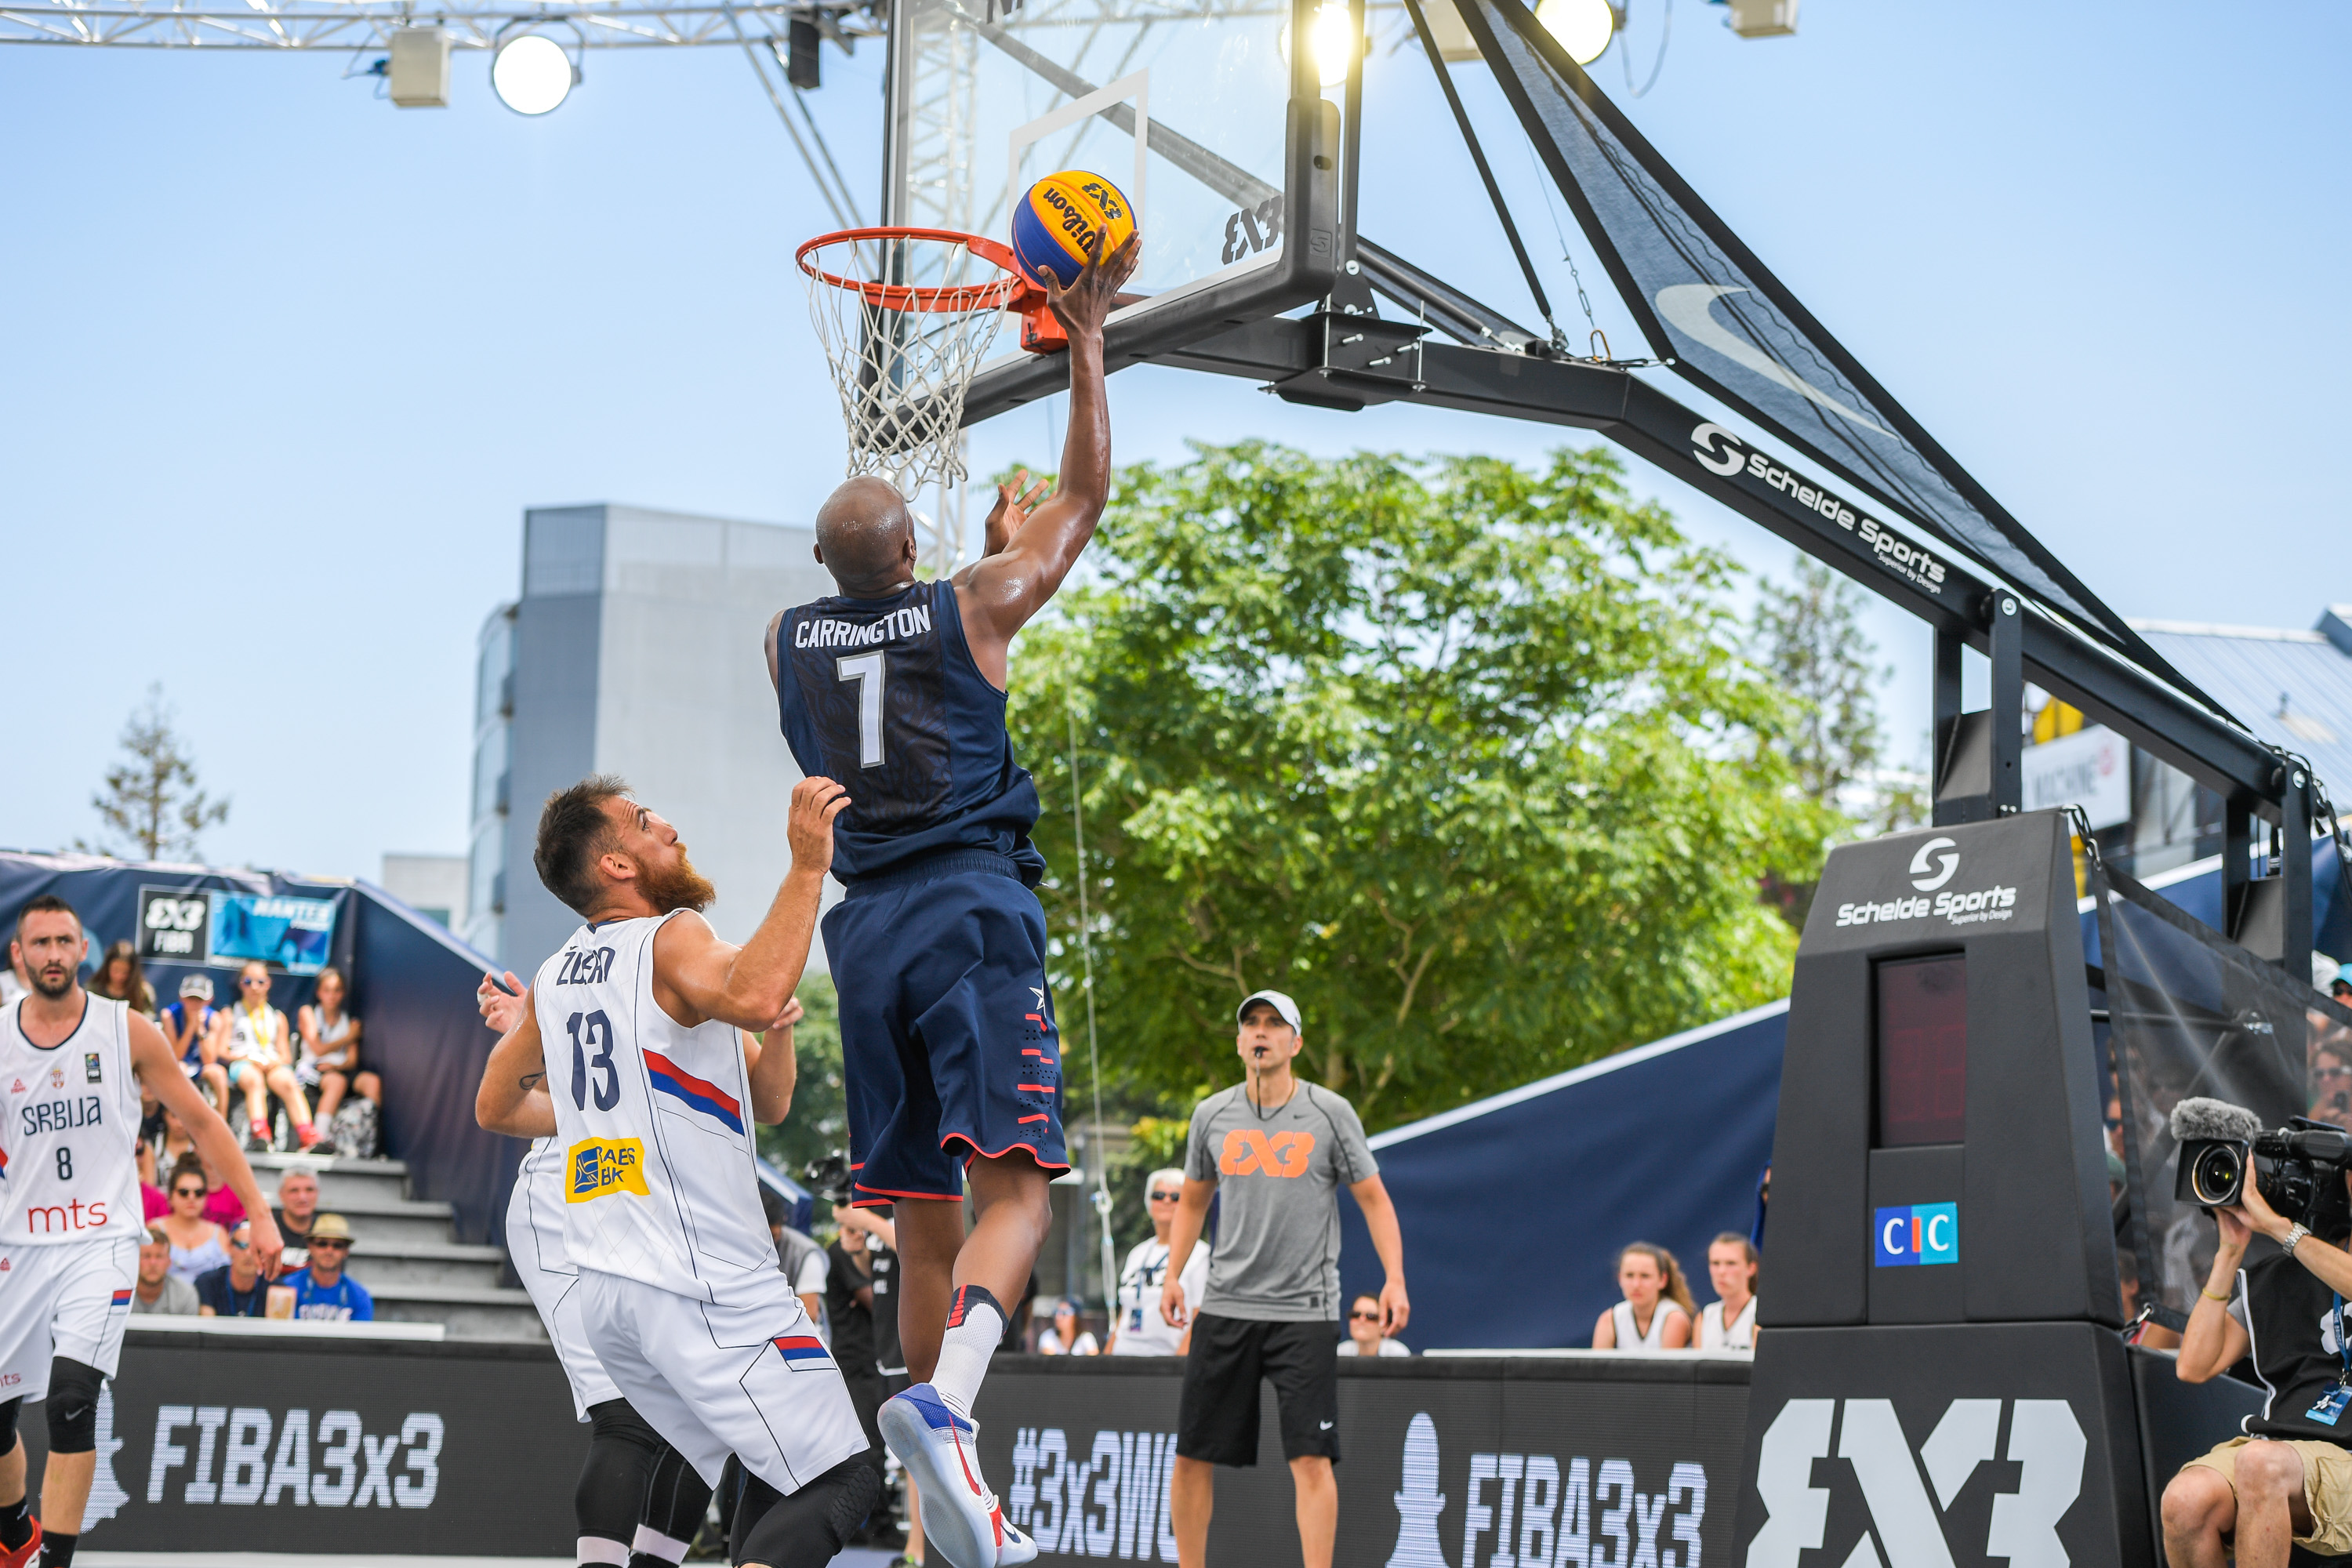 Rosters Finalized Ahead of Red Bull USA Basketball 3x3 Nationals